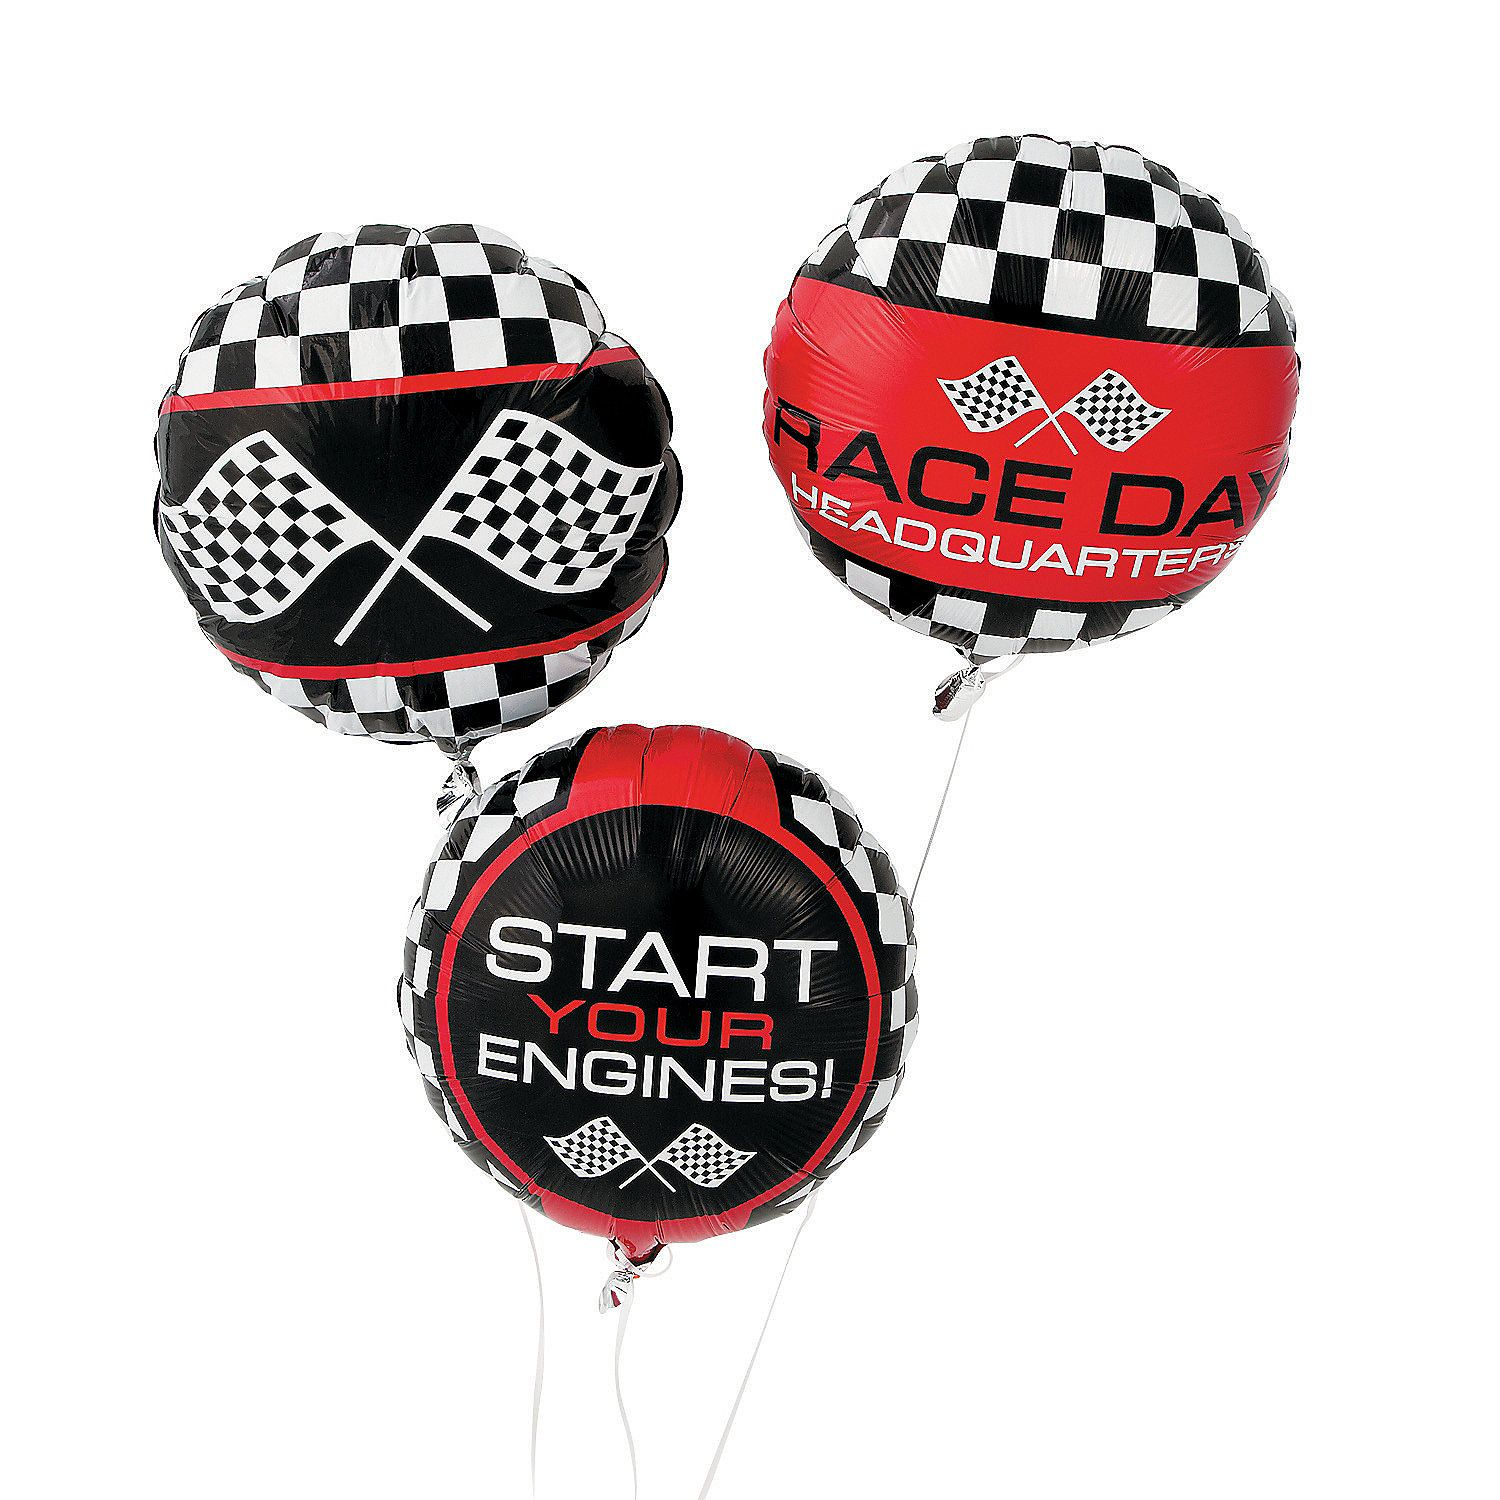 Race Car Themed Balloons